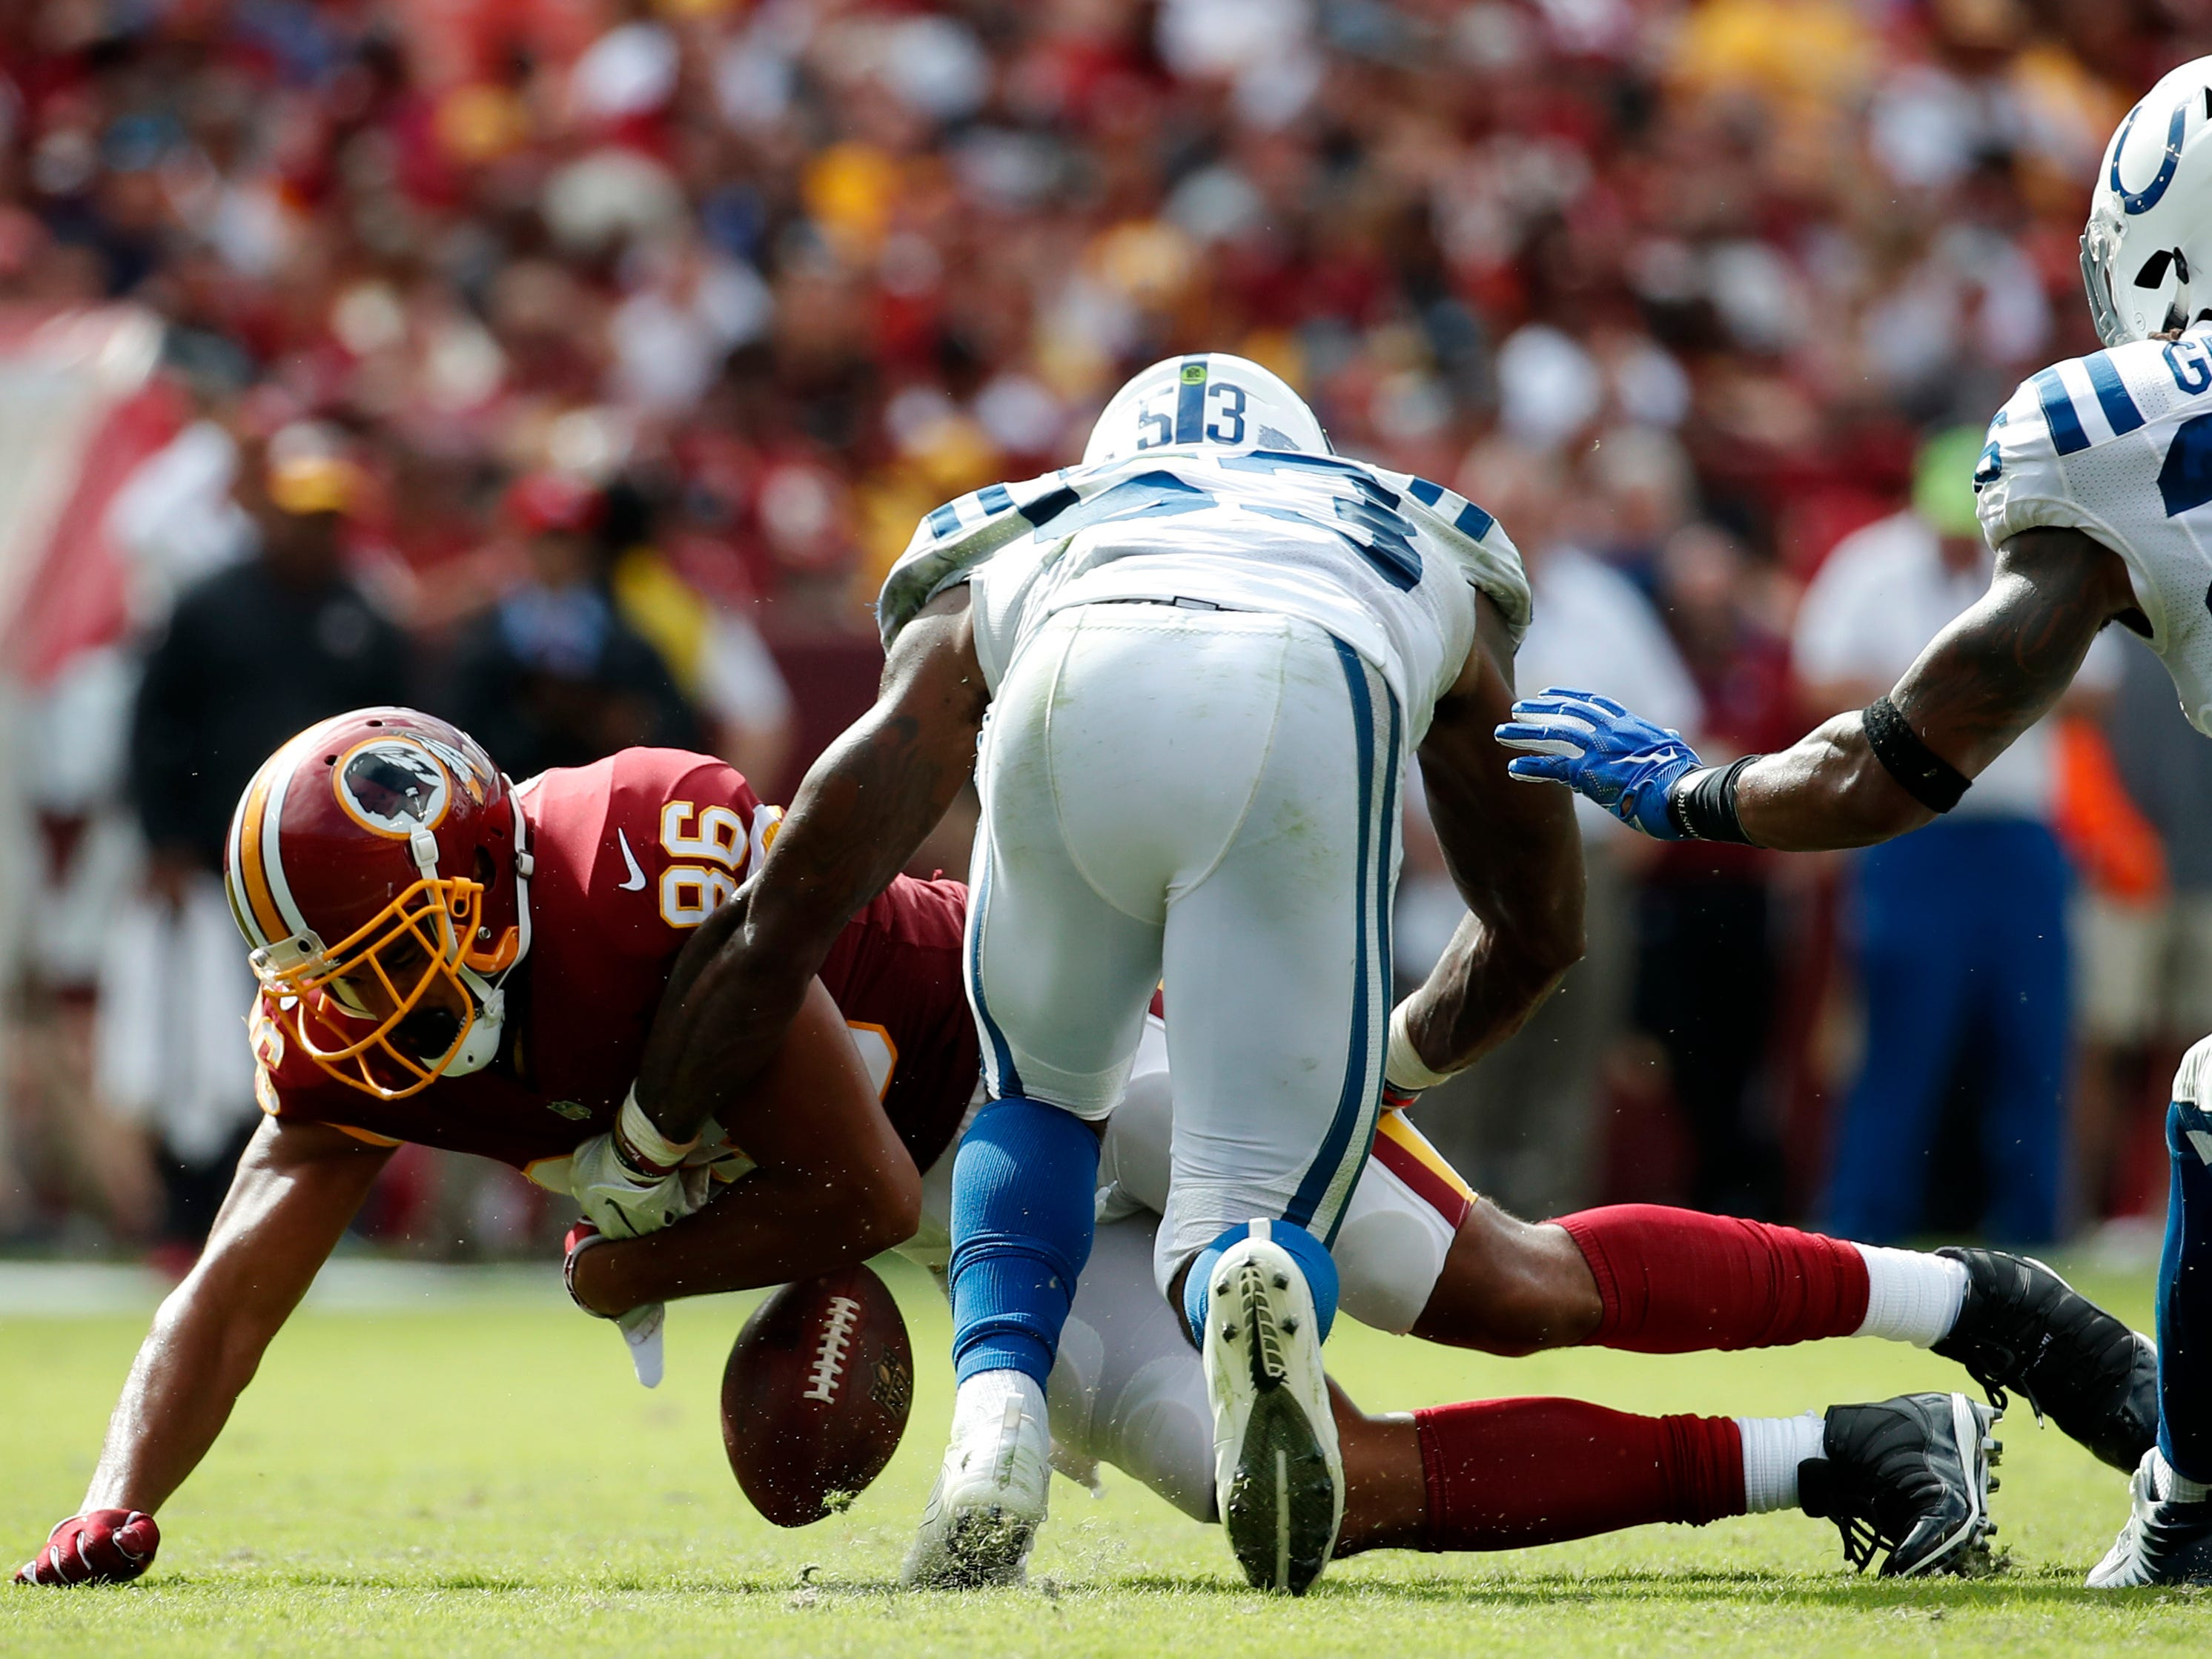 Washington Redskins tight end Jordan Reed fumbled as Darius Leonard (53) made the tackle in  their game on Sept. 16. Leonard recovered the fumble.